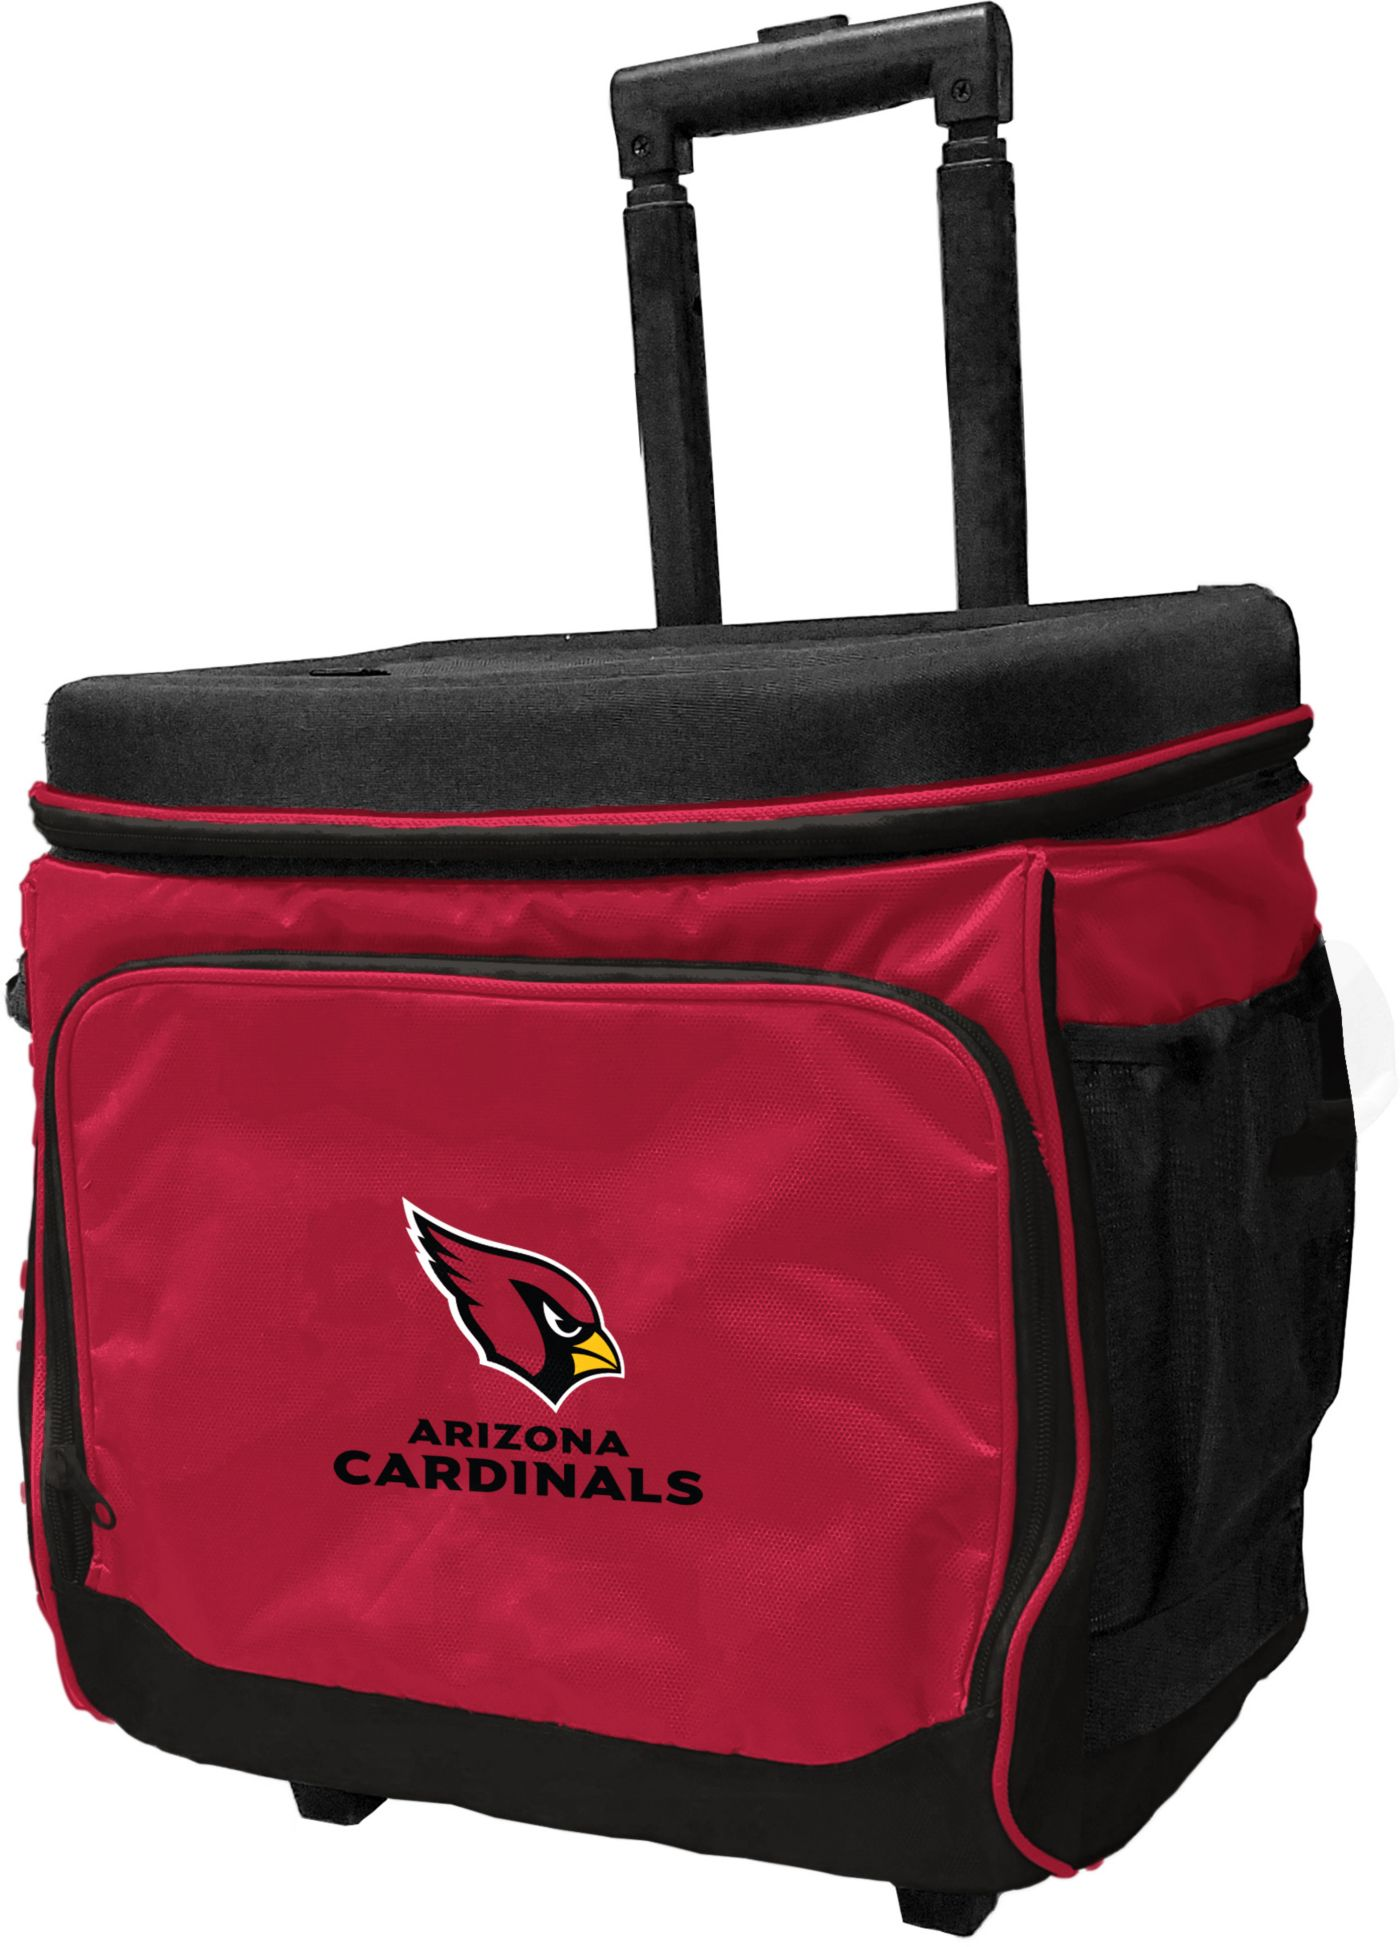 Arizona Cardinals Rolling Cooler